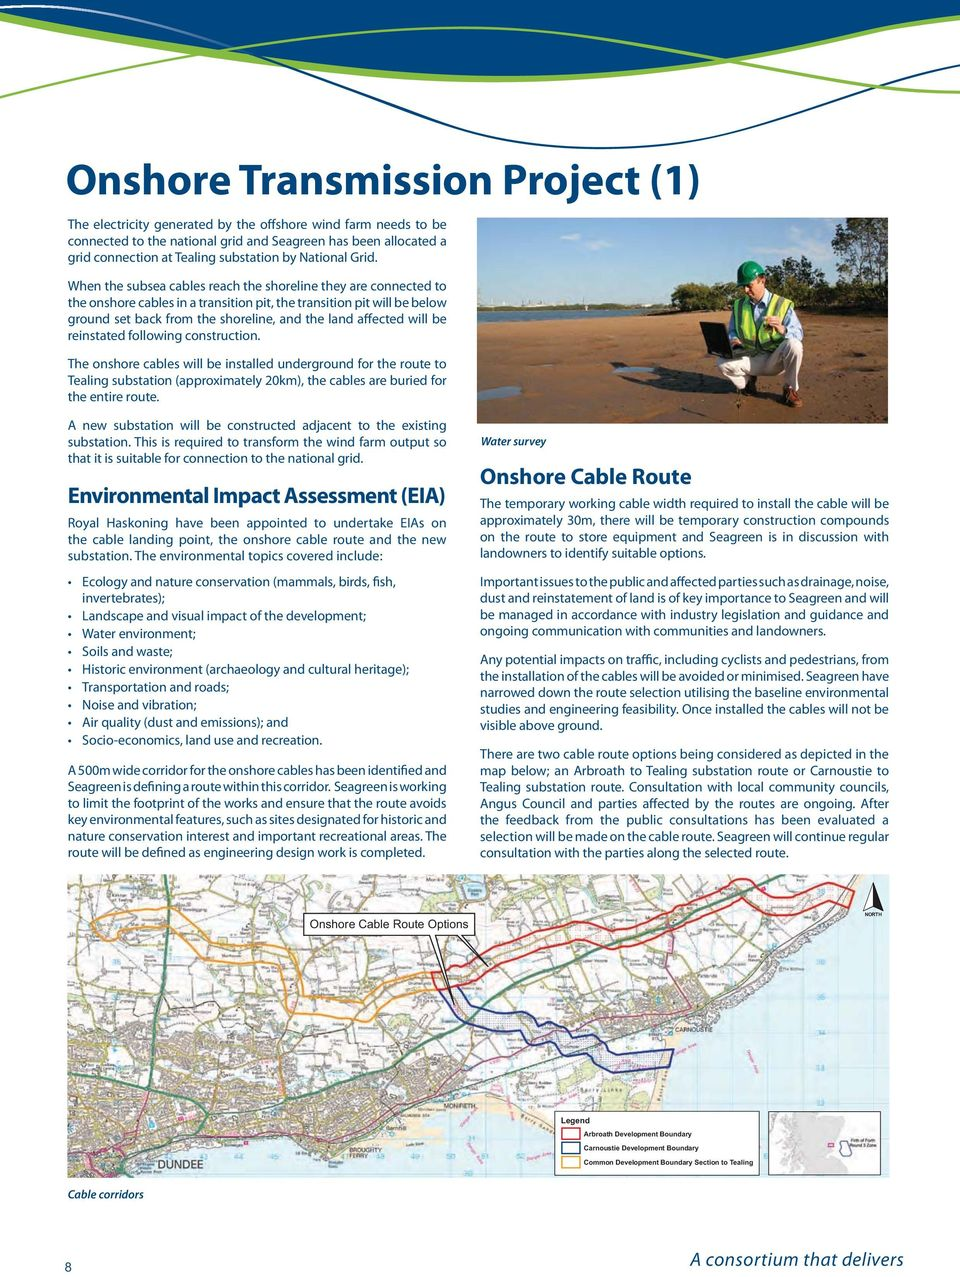 When the subsea cables reach the shoreline they are connected to the onshore cables in a transition pit, the transition pit will be below ground set back from the shoreline, and the land affected